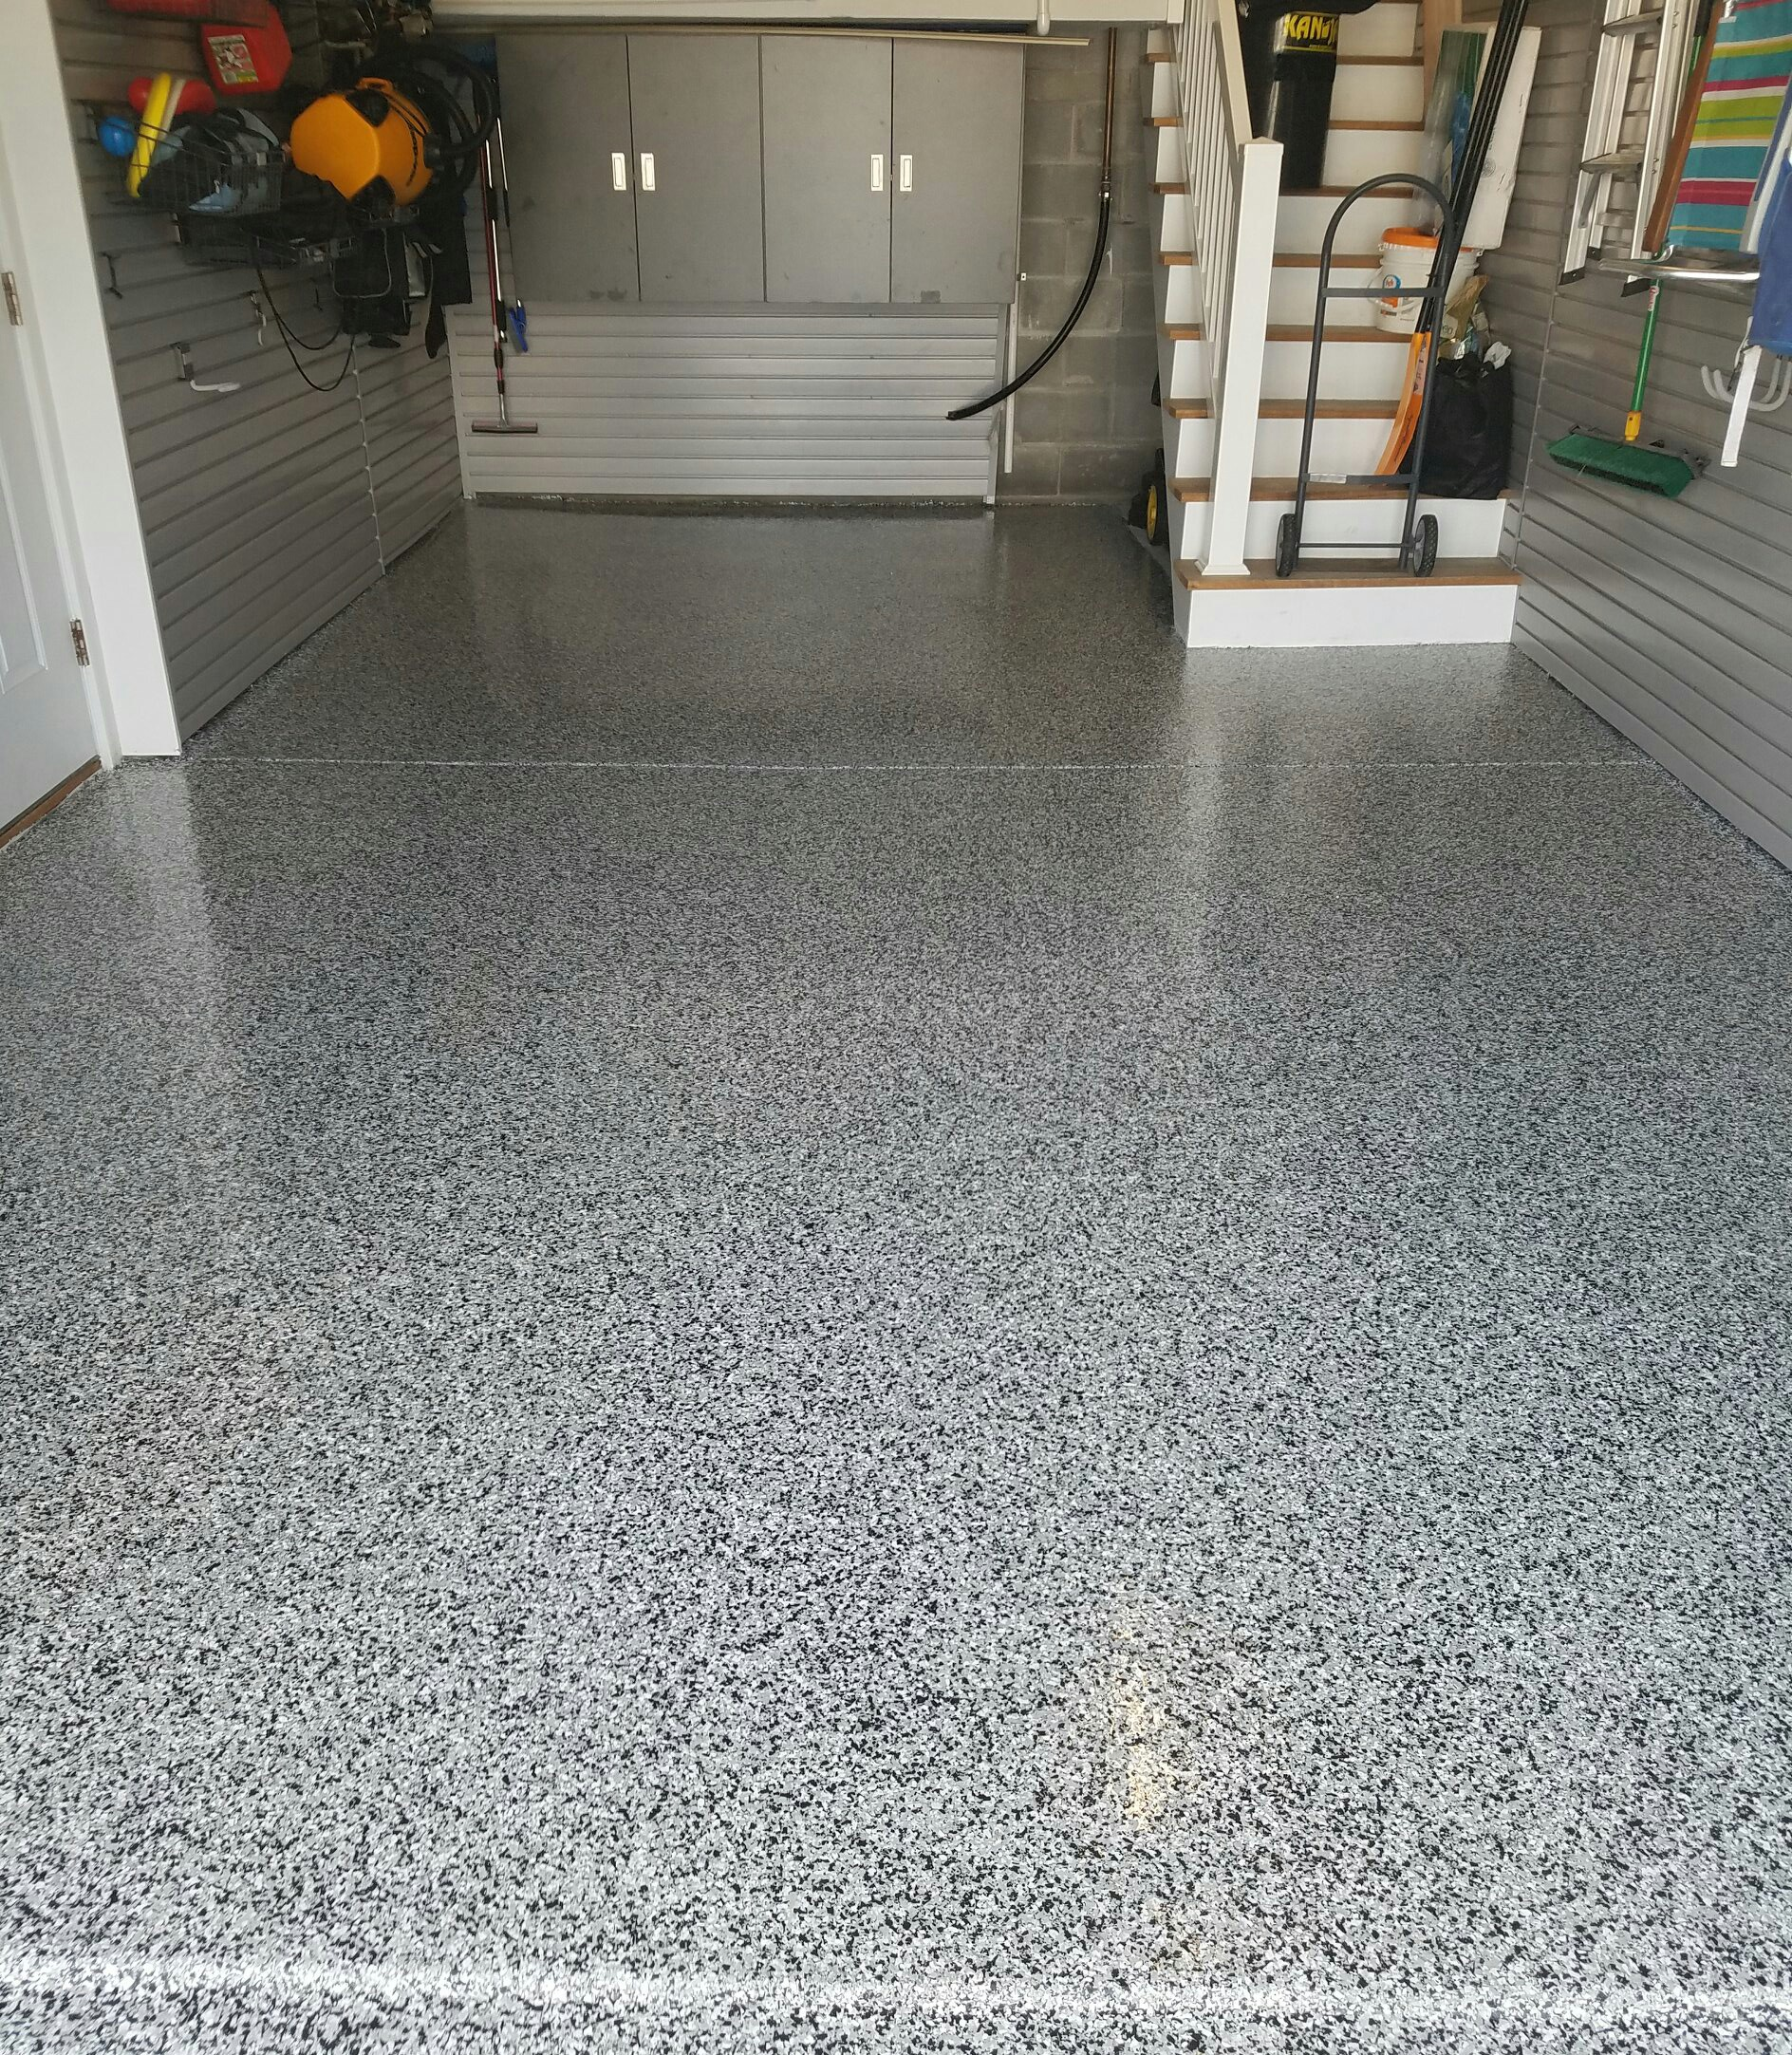 garage floor flooring a throughout glance floors tiles racedeck the shop and about